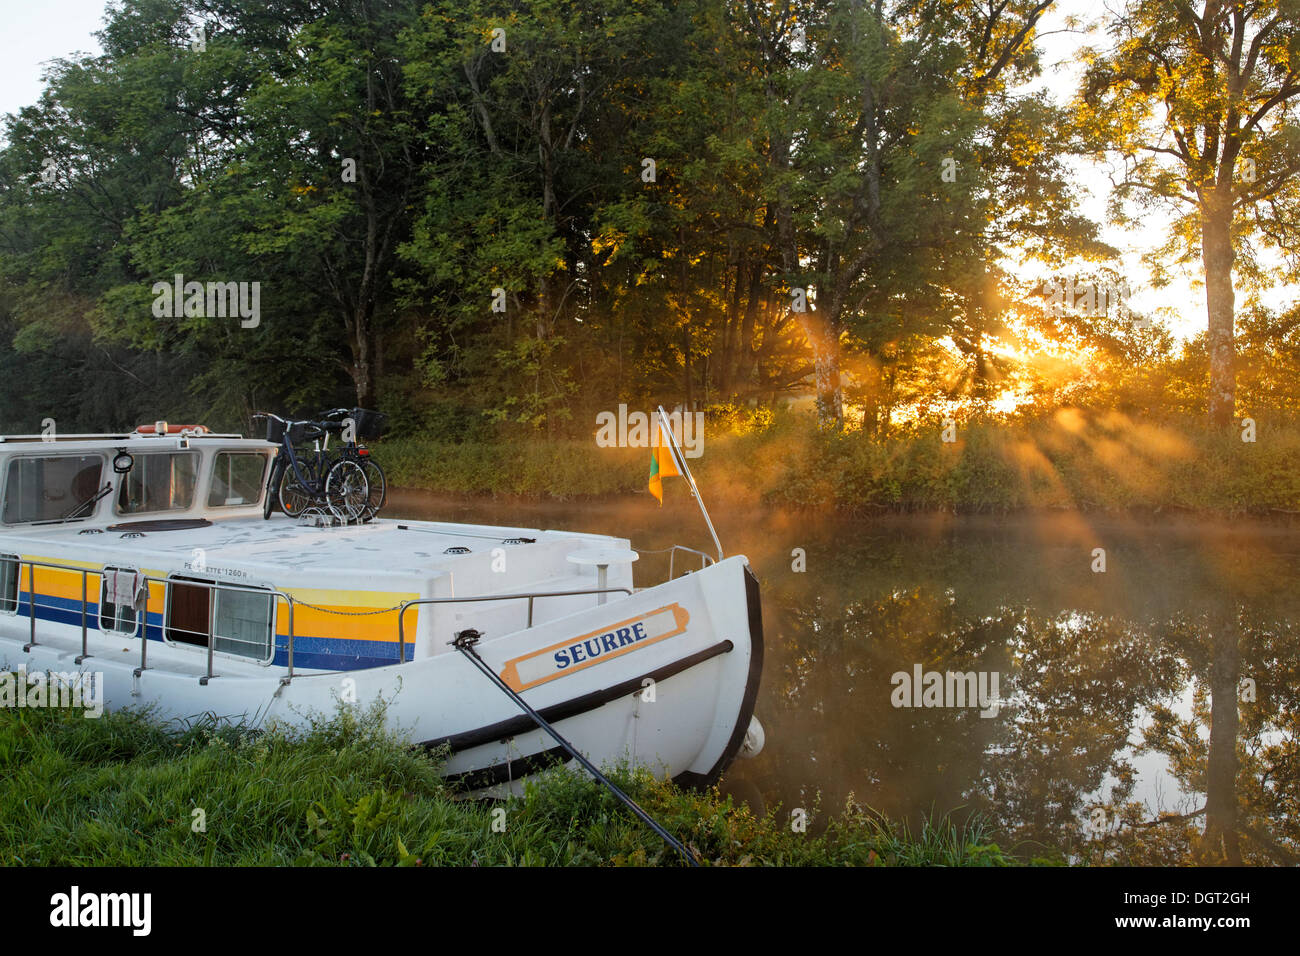 Houseboat on the Canal des Vosges, formerly the Canal de l'Est, at PK 88, summit level of the canal - Stock Image